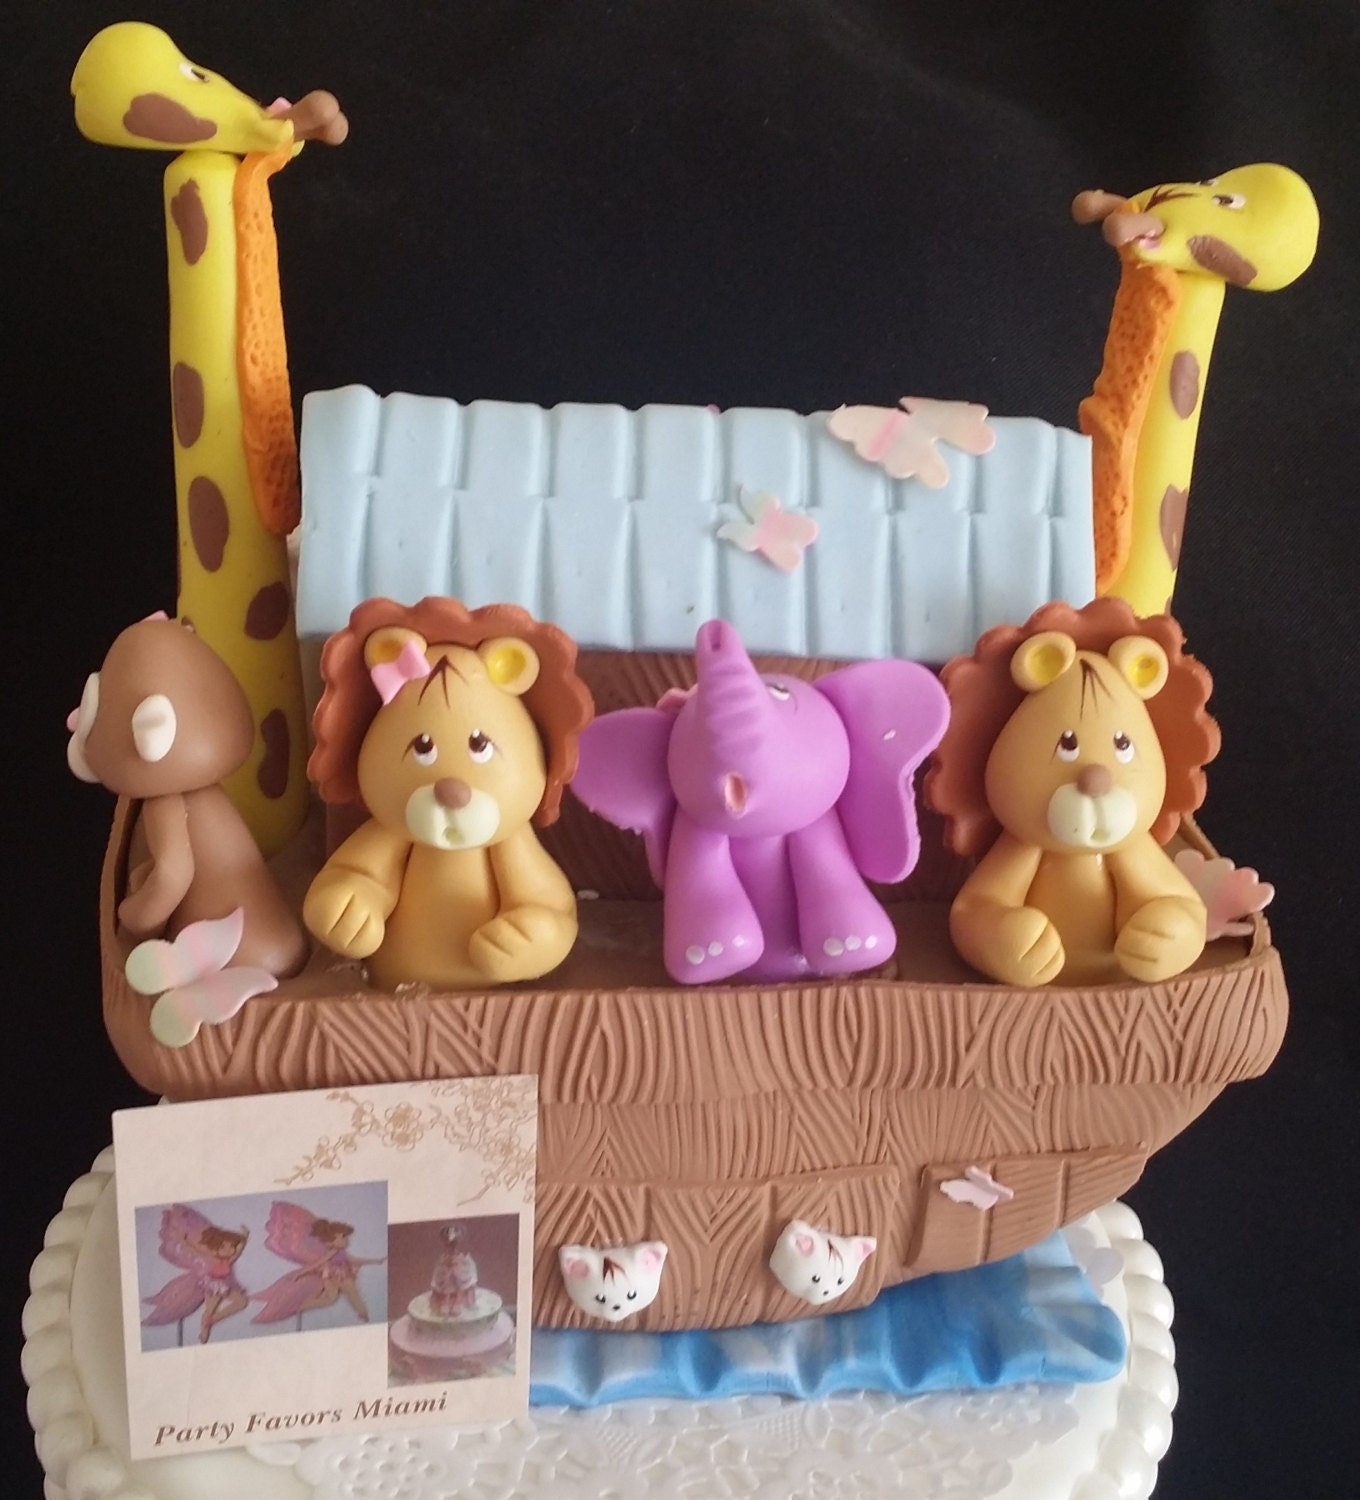 Noahs ark decoration noah 39 s ark shower noah 39 s ark for Noah s ark decorations